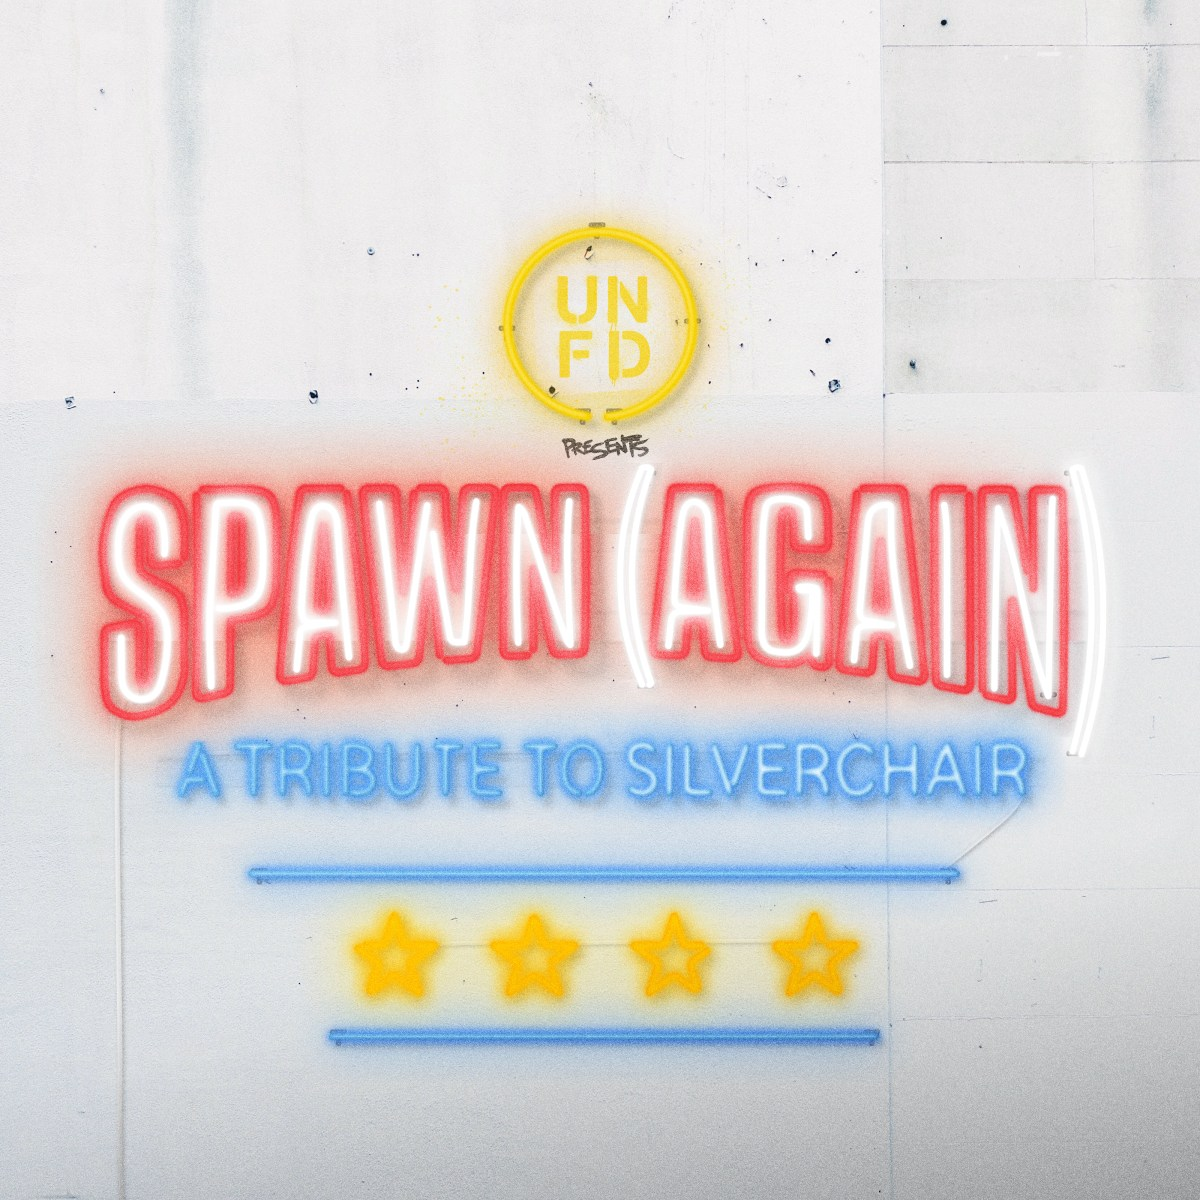 Spawn (Again): A Tribute To Silverchair (Album Review)